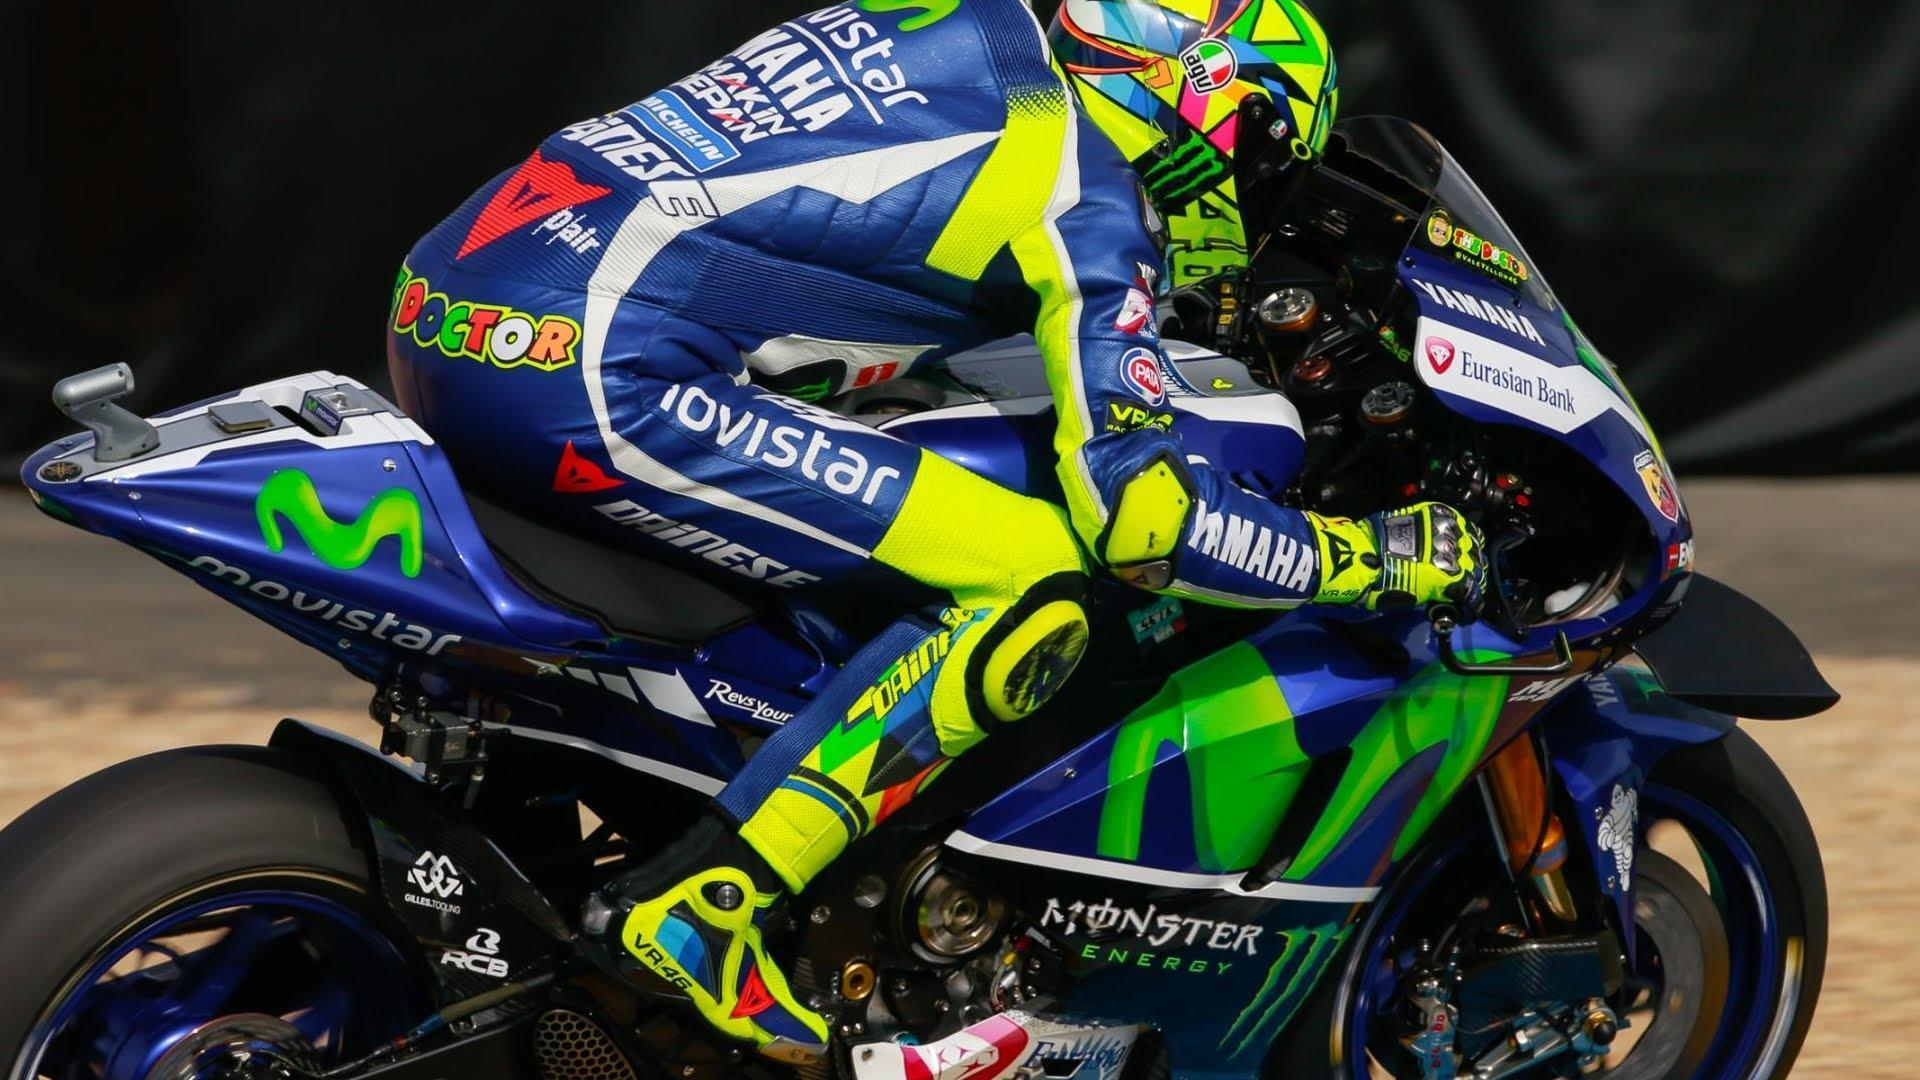 Valentino Rossi 2019 Wallpapers Wallpaper Cave